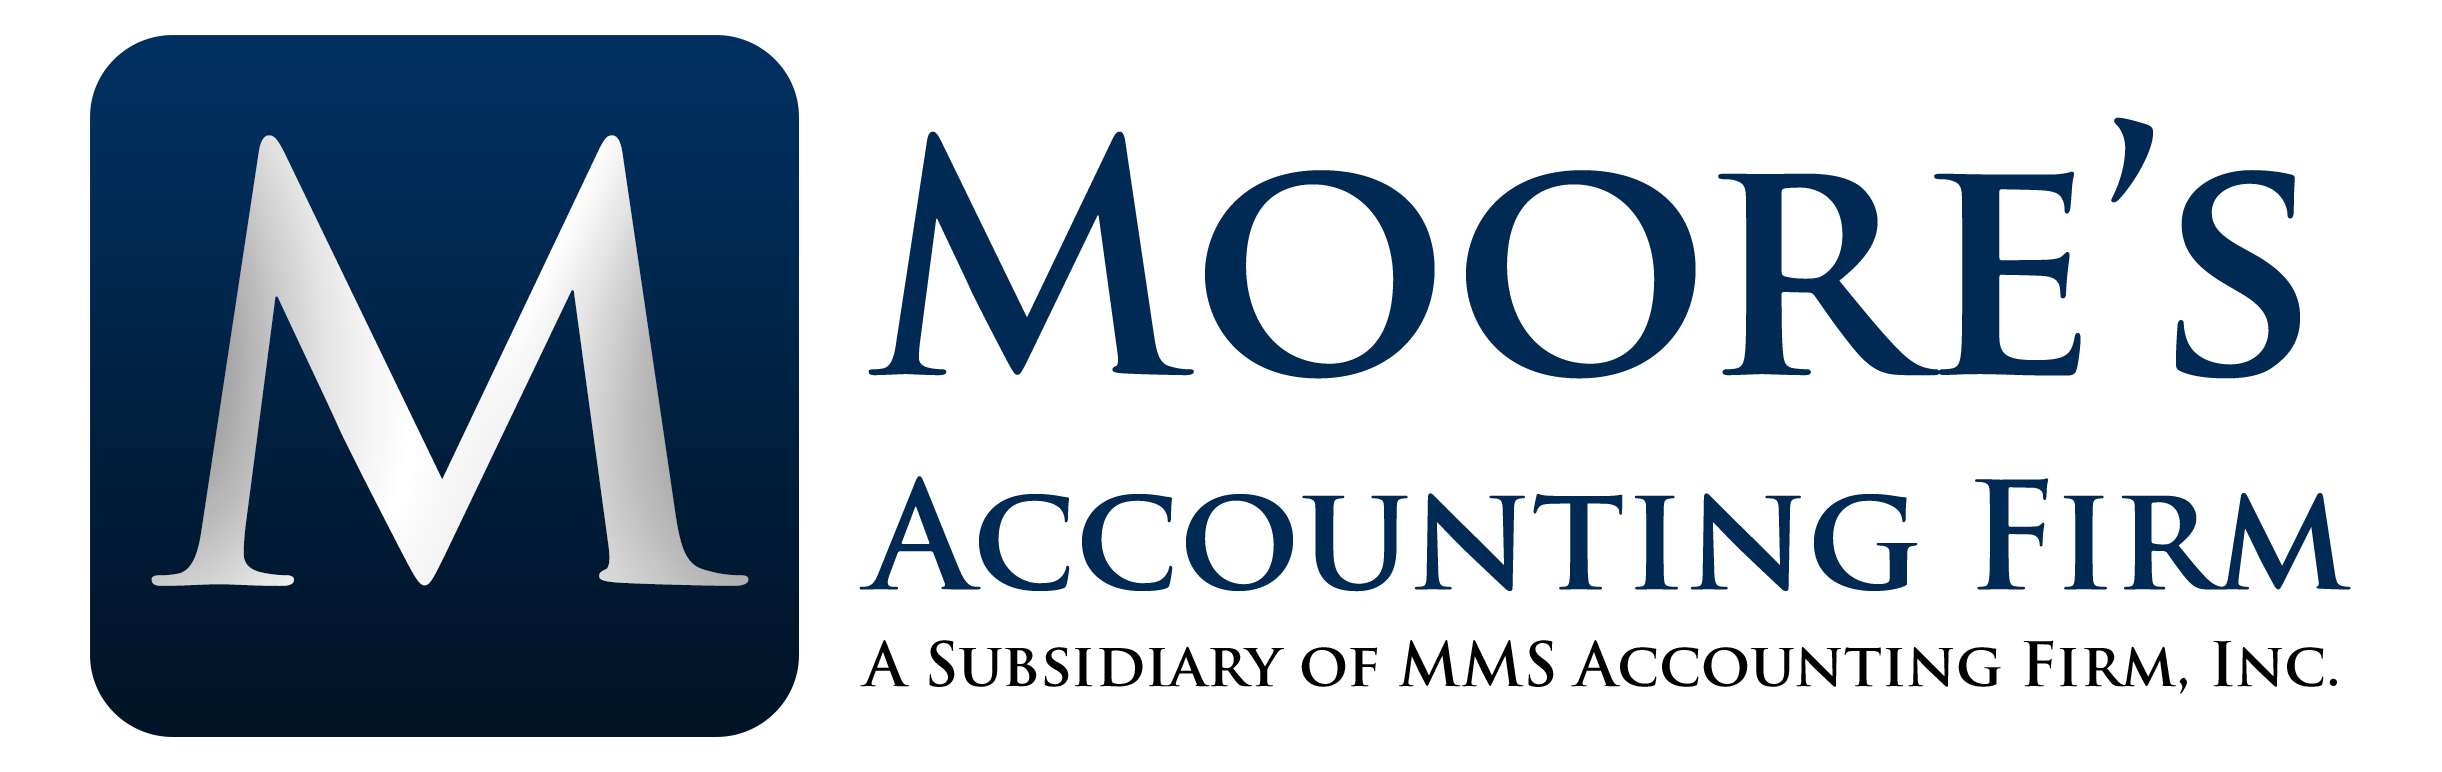 Moore's Accounting Firm